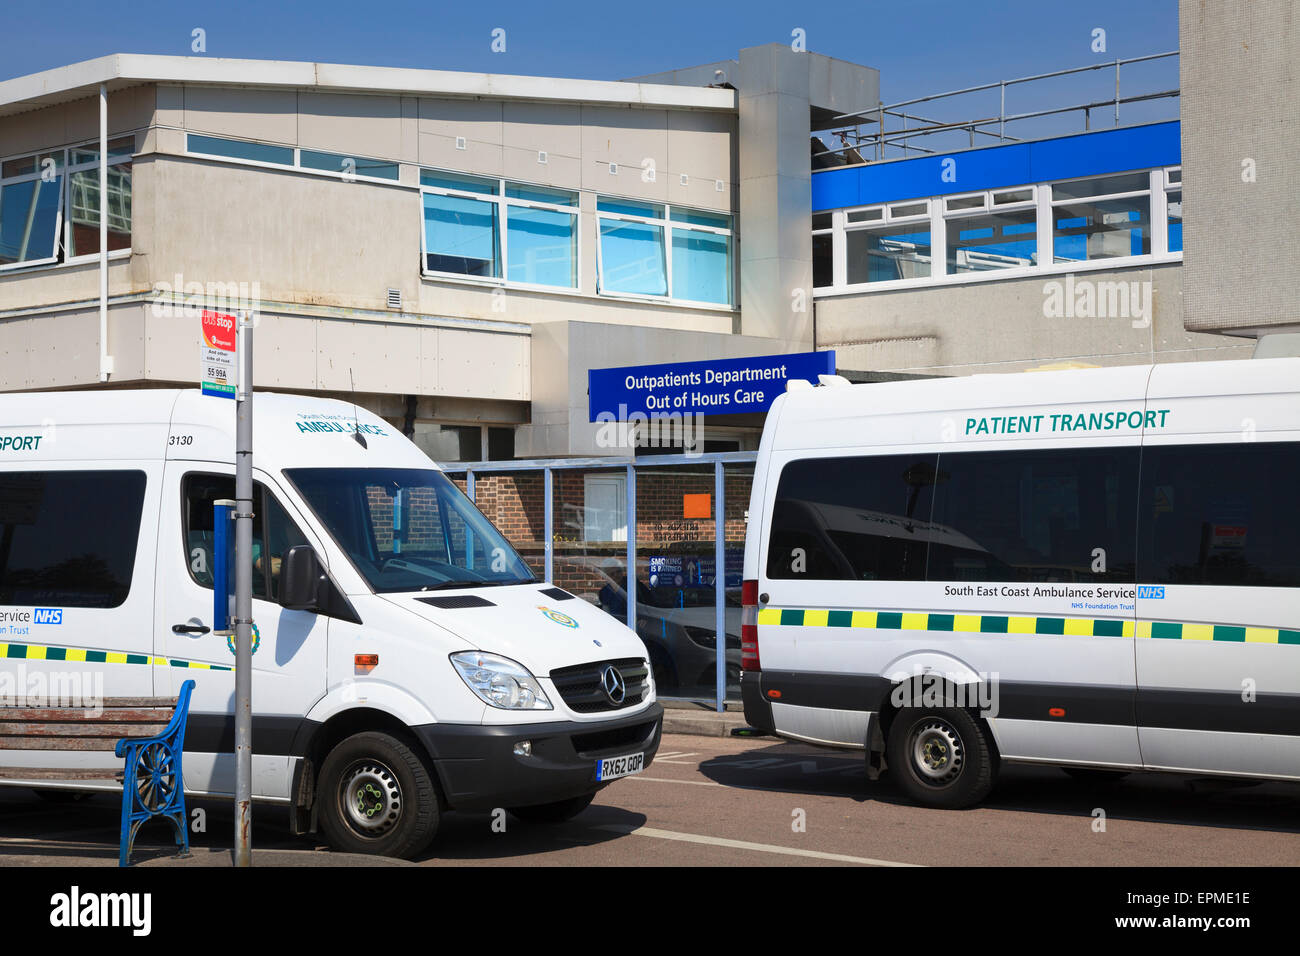 Patient Transport vehicles outside Outpatients Department entrance of St Richards Hospital Chichester - Stock Image